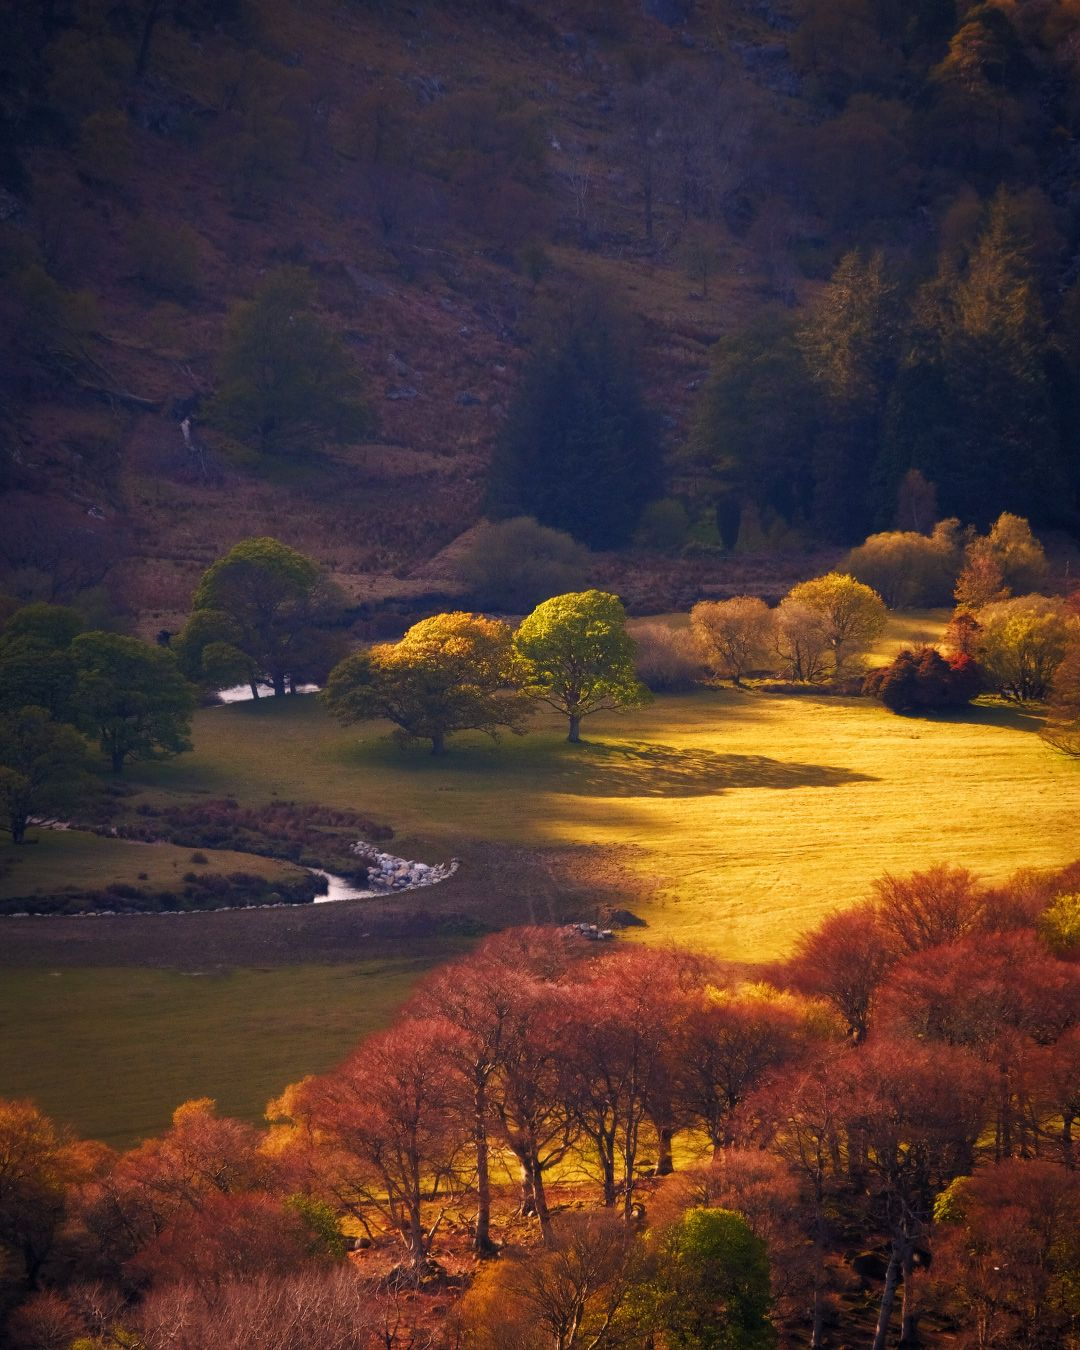 ...sunny meadows... ireland nature outdoors landscape countryside meadows fields river bend from above sun evening dusk sunset trees slopes hills wicklow moountains luggala guiness lake europe picturesque awe spectacular shades shadows tones titnts